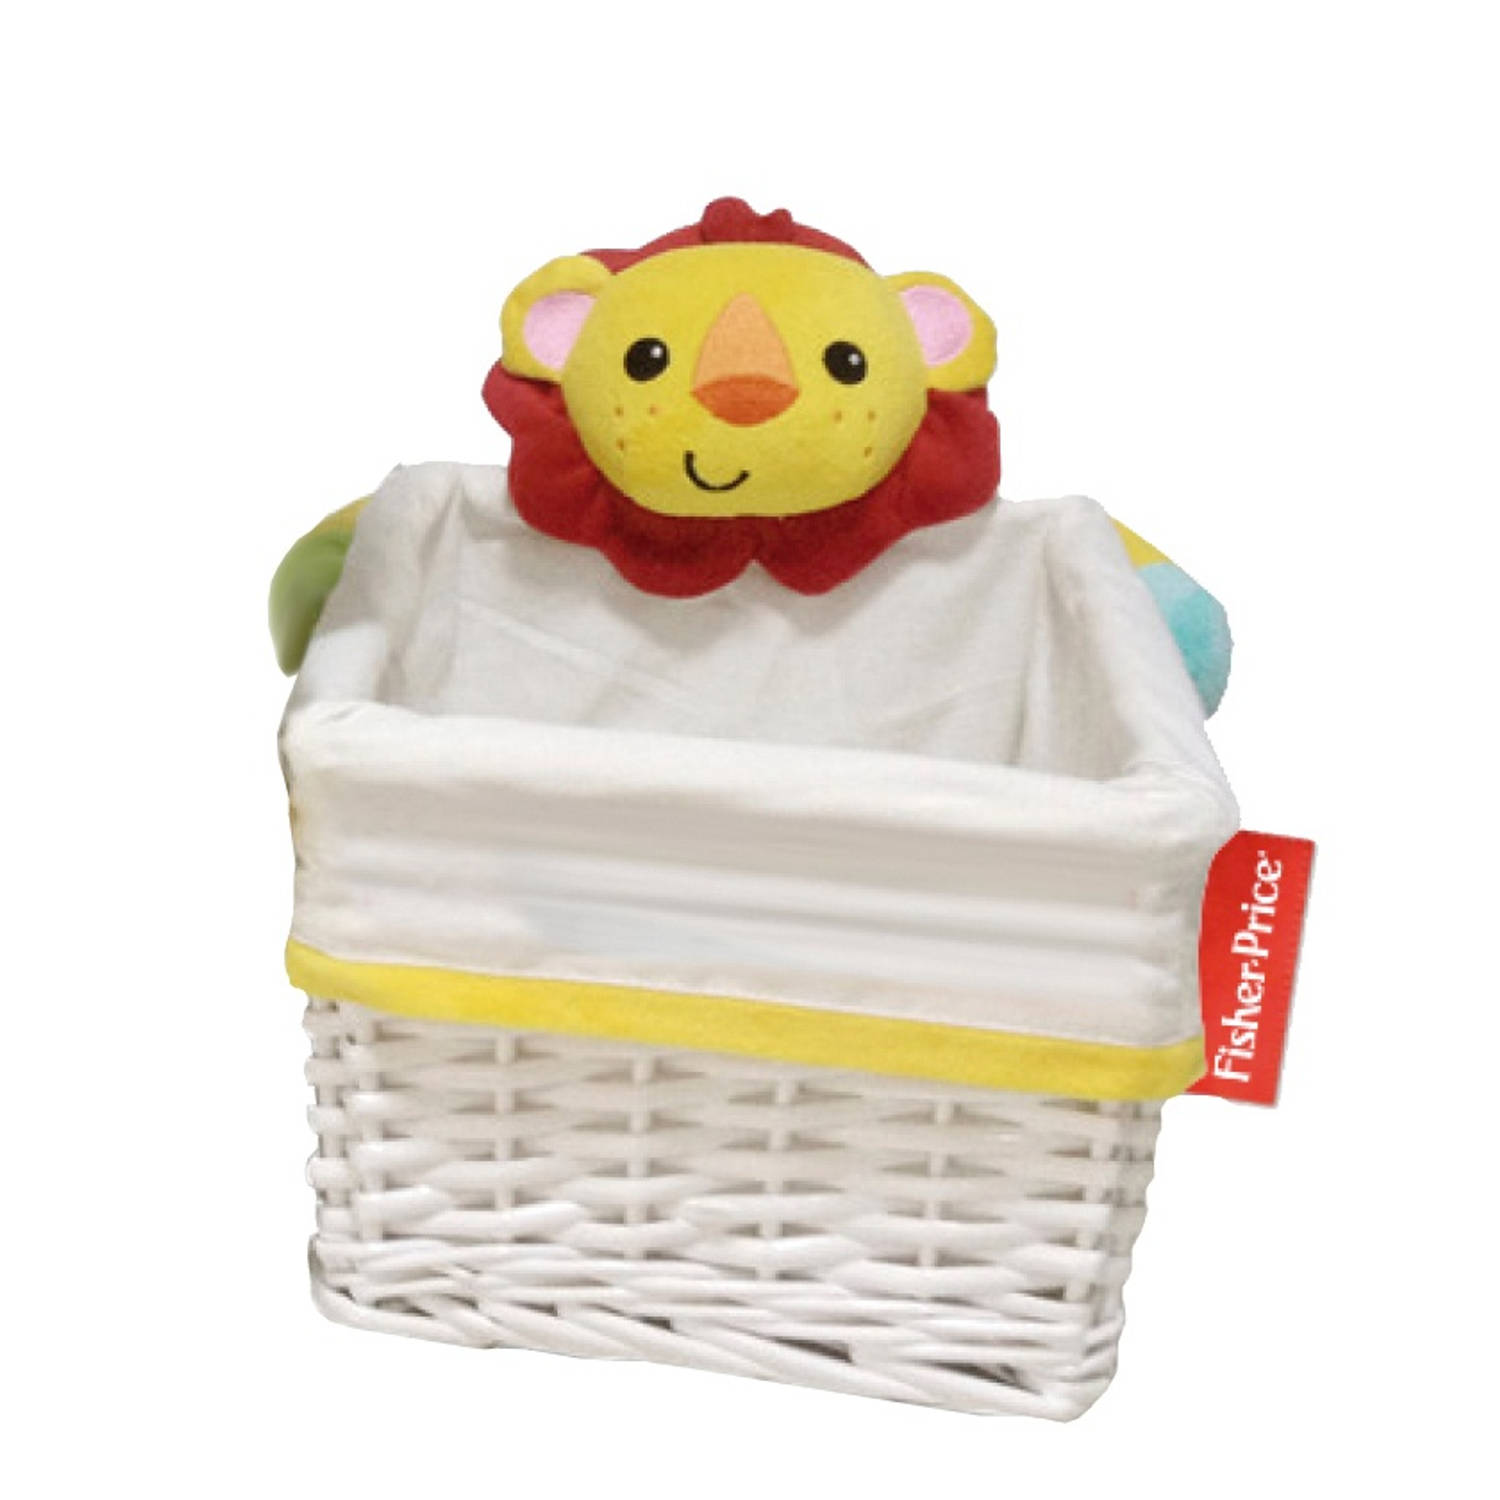 Fisher-Price opbergbox leeuw wit 4 liter